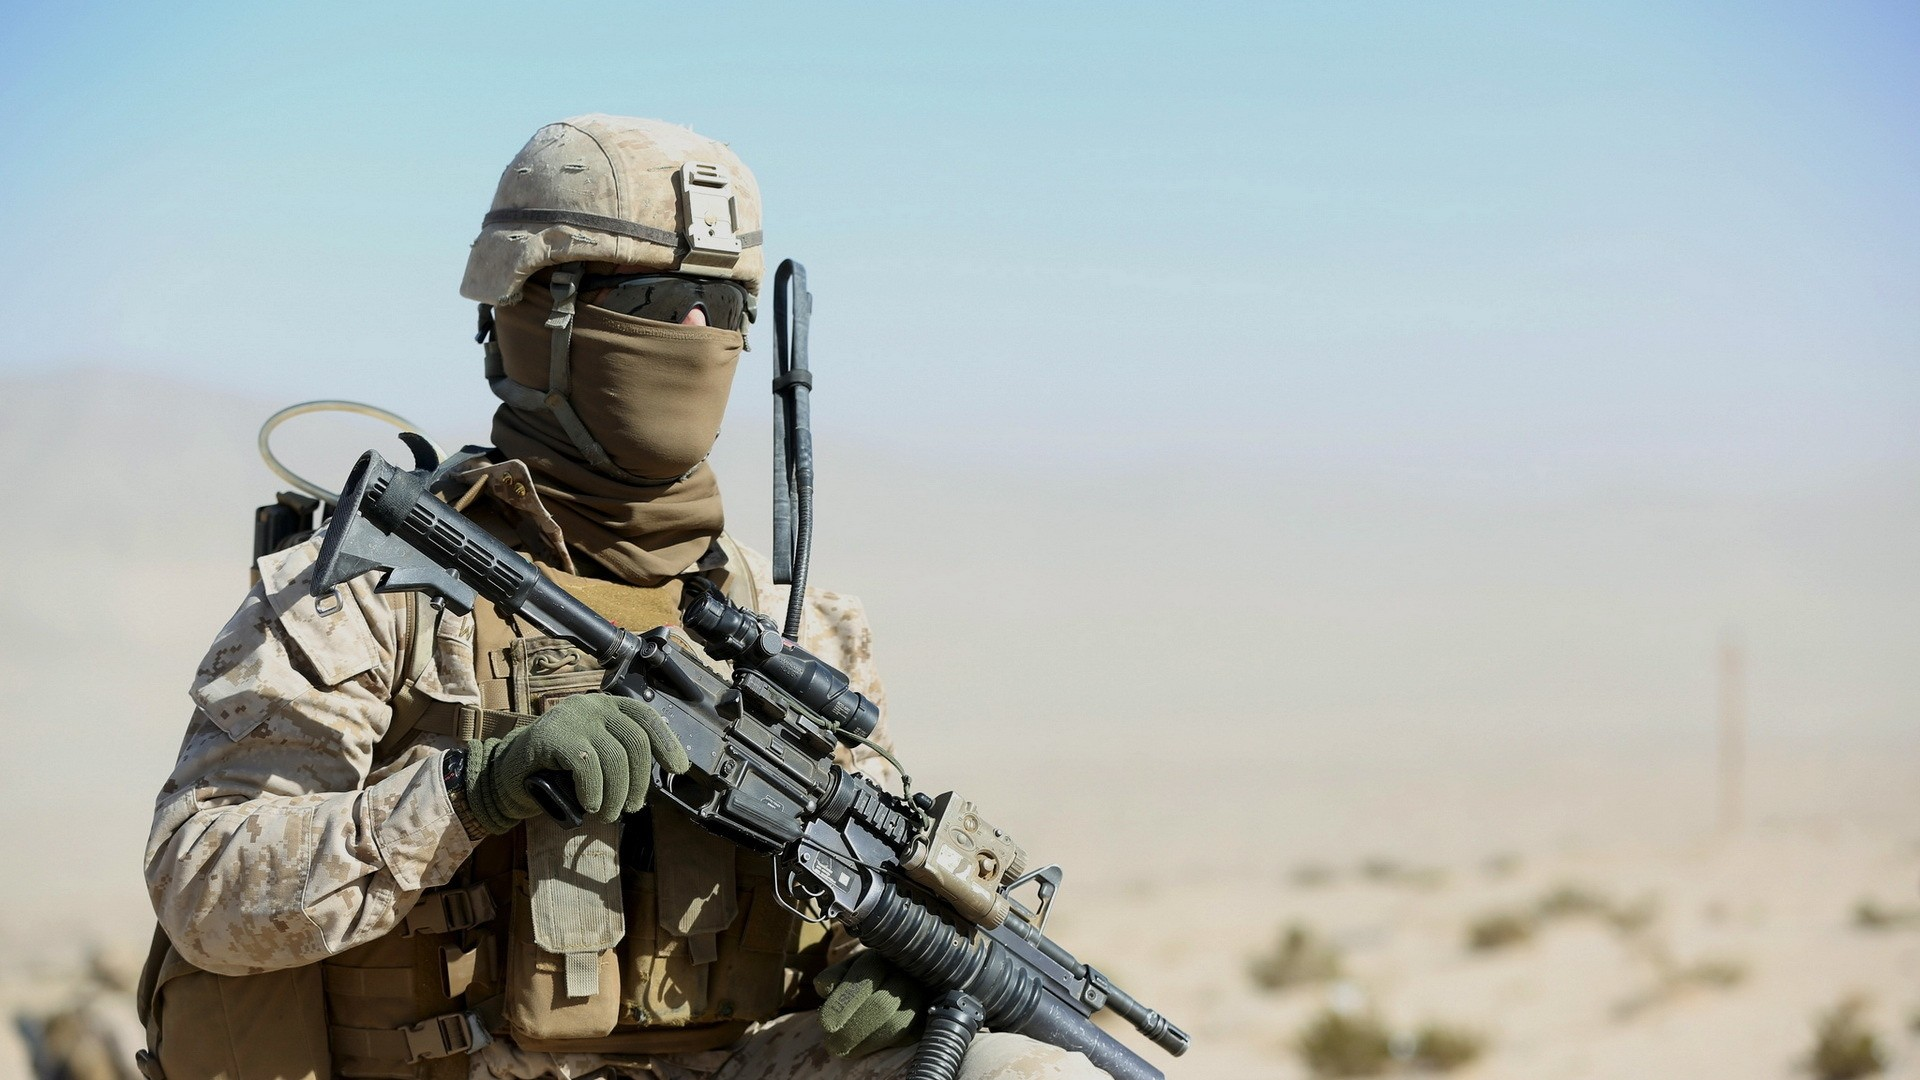 Cool Army Wallpapers In HD For Free Download   HD Wallpapers   Pinterest    Army wallpaper, Wallpaper and Wallpapers android